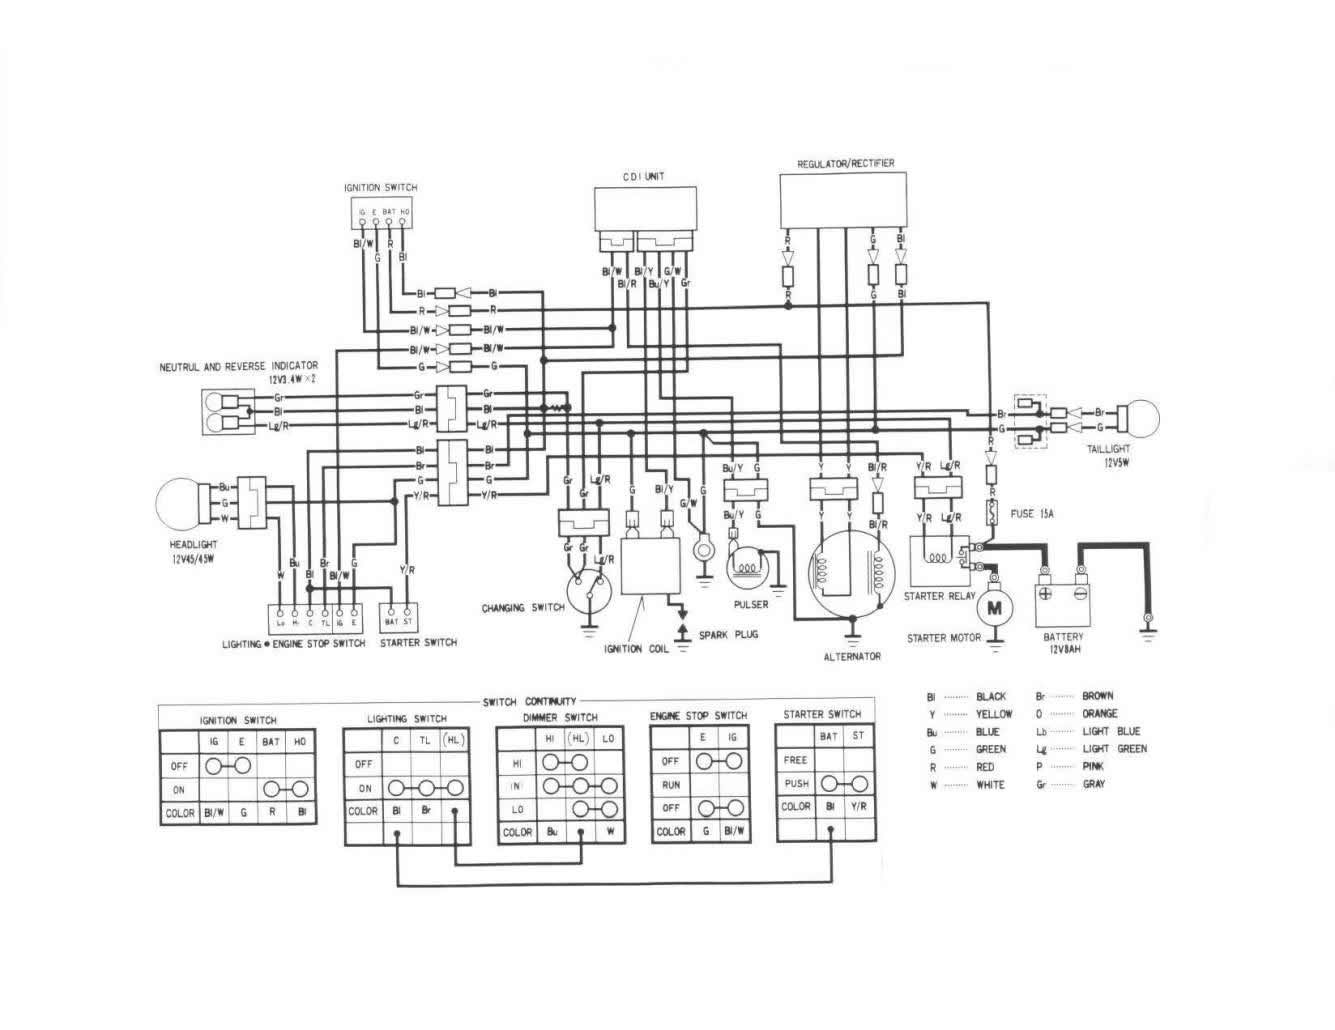 Kymco Super 8 Wiring Diagram Engine Wiring Diagram Images